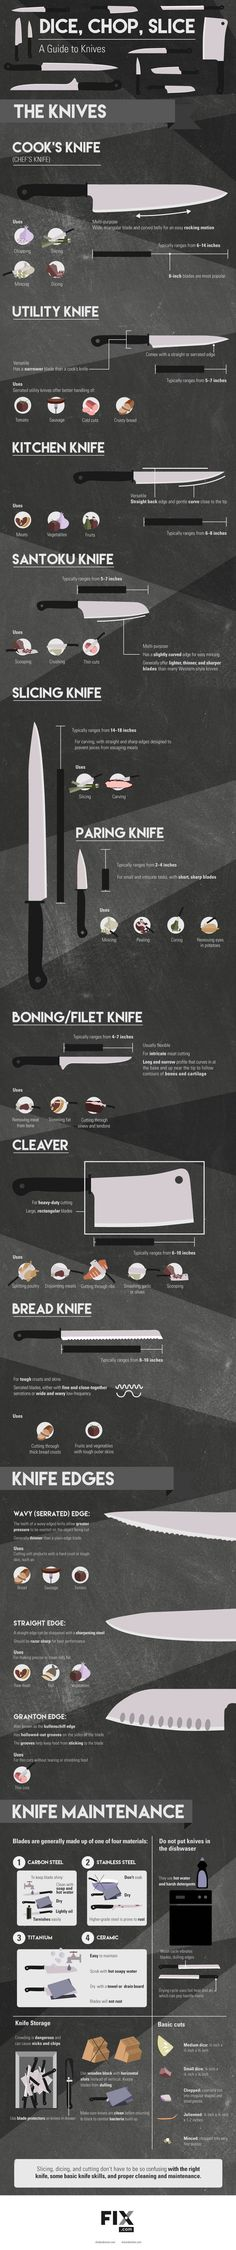 Ultimate Kitchen Knife Guide on Plating Pixels Best knives to use in the kitchen What each knife is for how to use knives and how to maintain kitchen knives utility kitch. Cooking Tools, Cooking Classes, Cooking Recipes, Cooking Videos, Cooking Hacks, Cuisine Diverse, Culinary Arts, Baking Tips, Kitchen Hacks